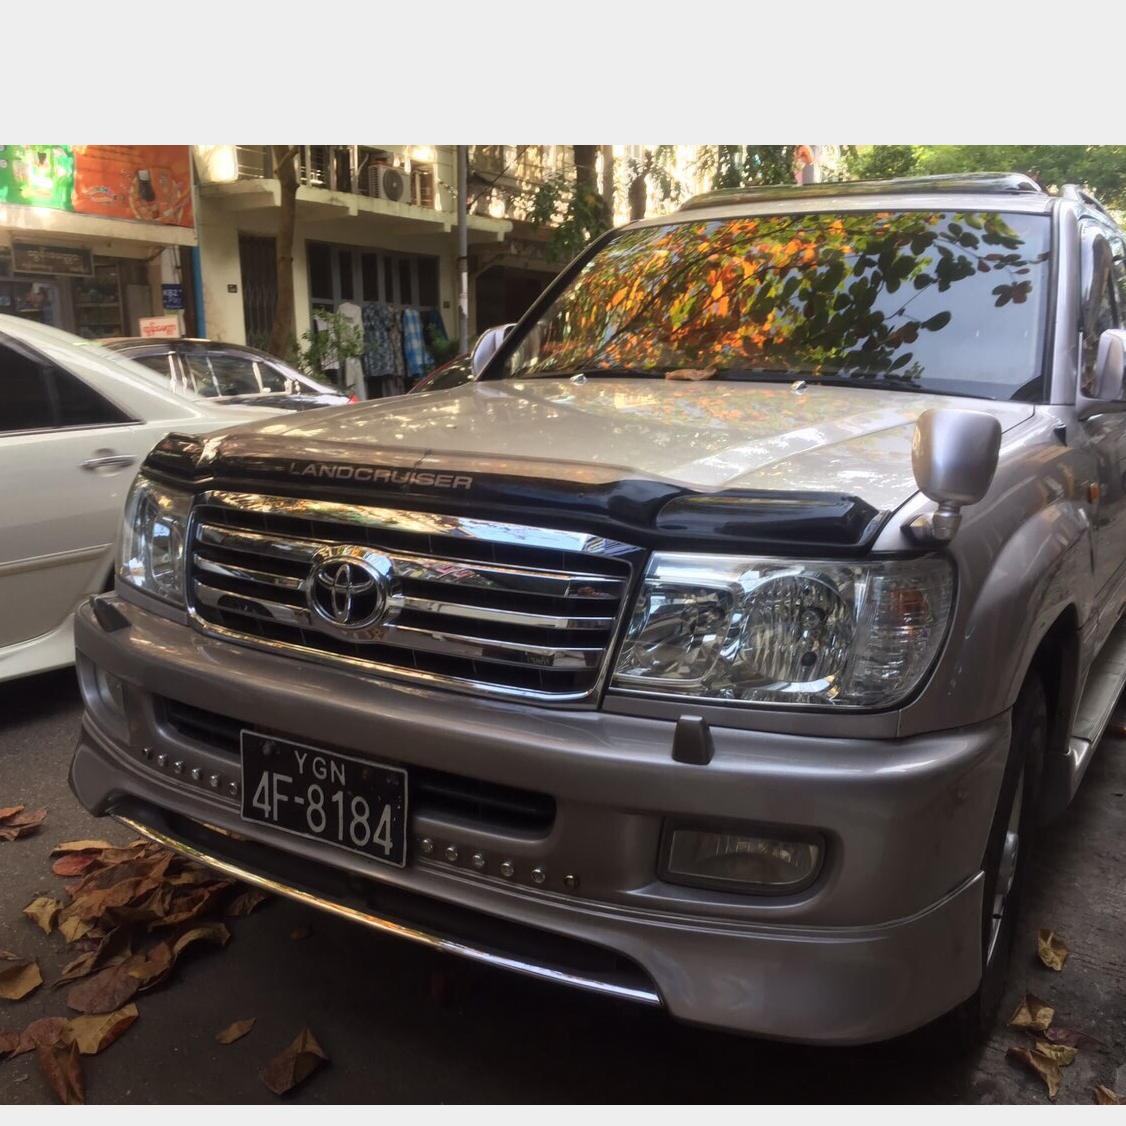 Toyota Land Cruiser Cygnus  1999  Image, 4x4/SUV classified, Myanmar marketplace, Myanmarkt